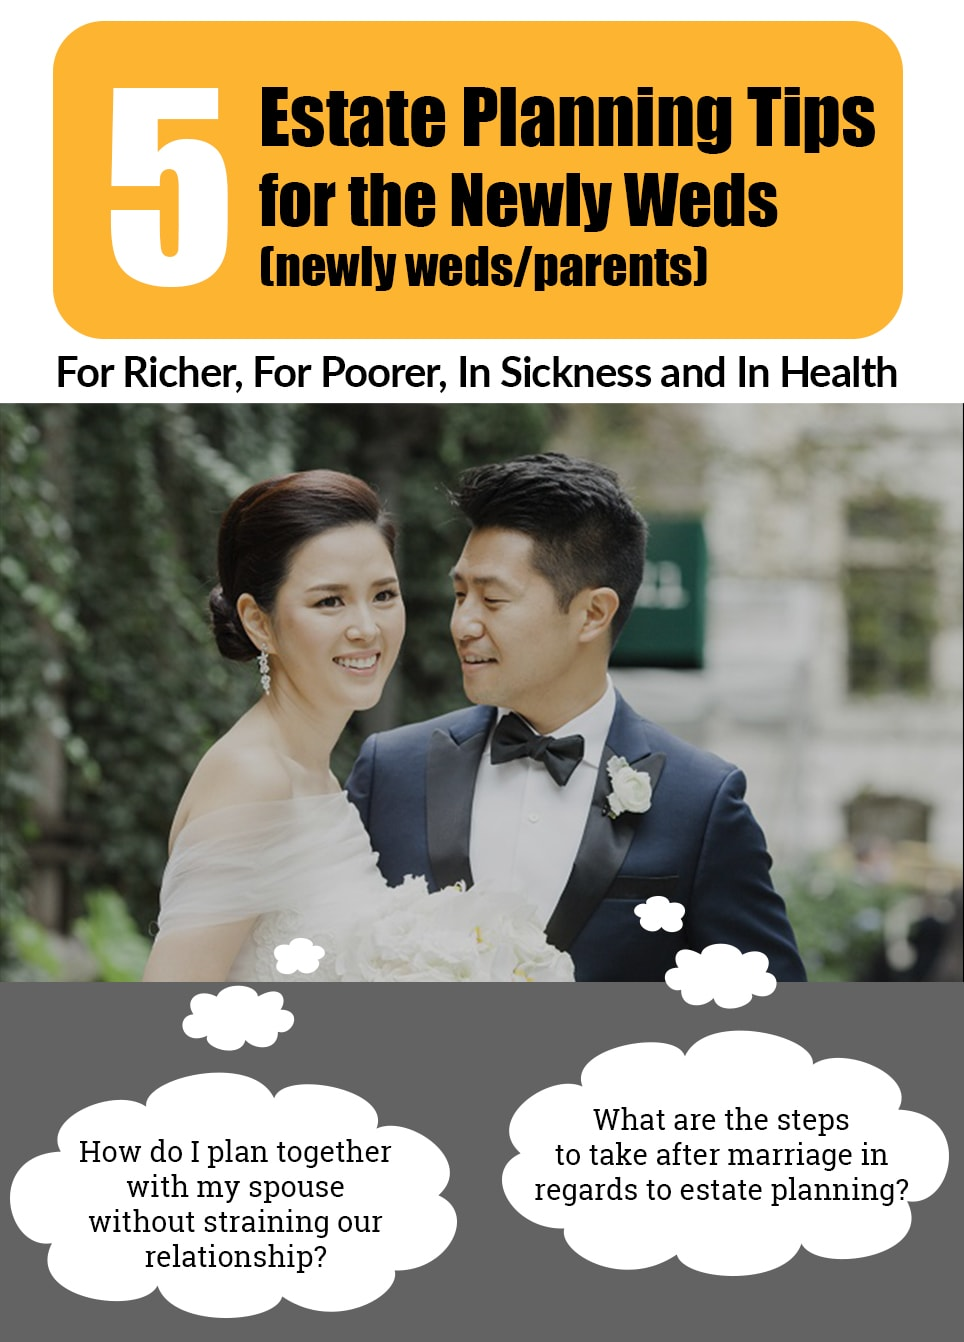 Estate Planning for Newly Wed